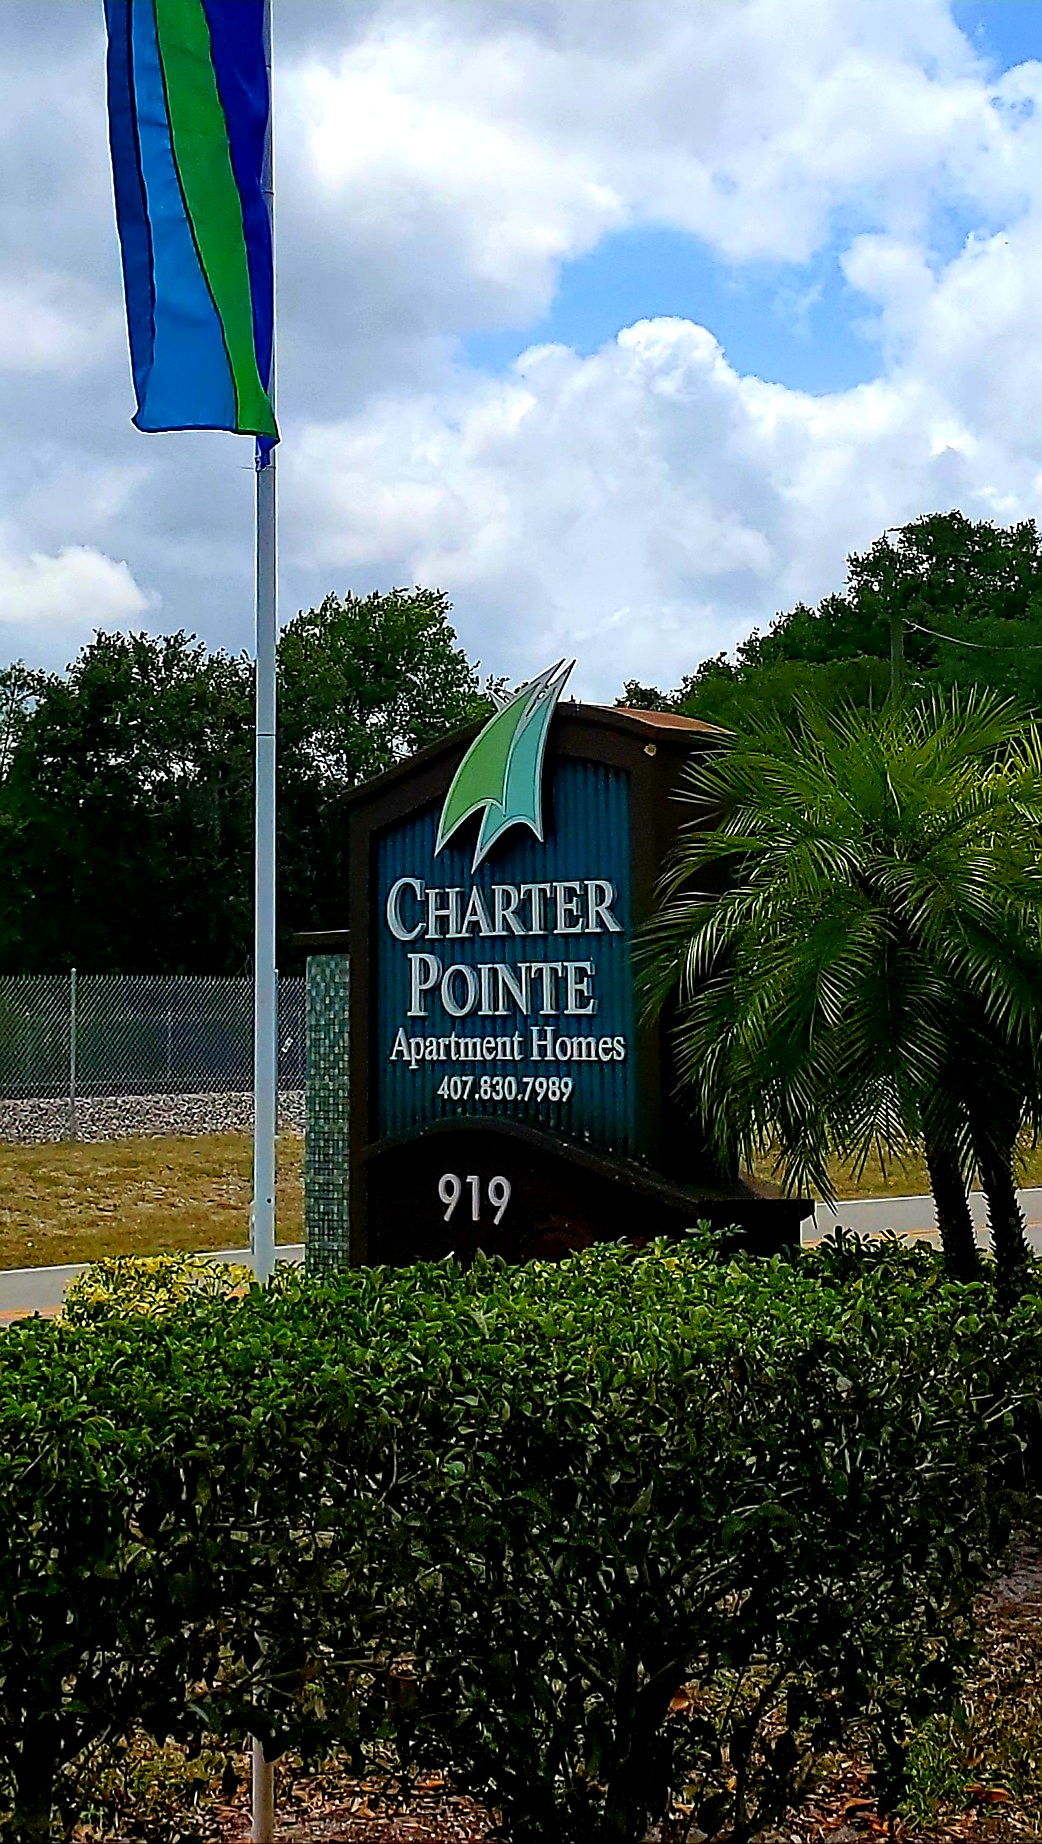 Charter Pointe Apartments